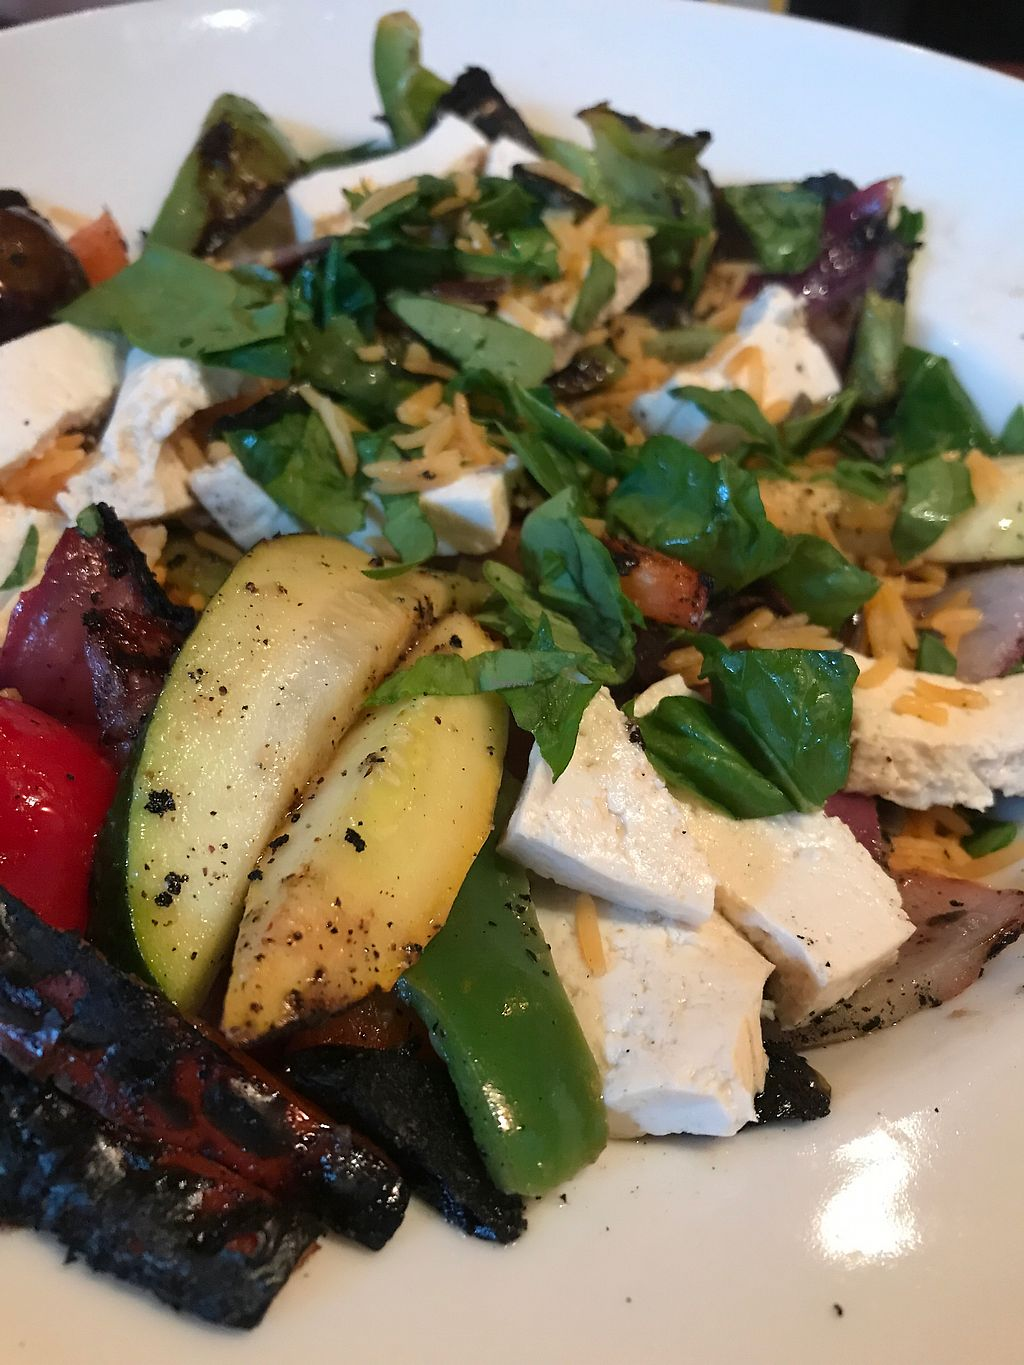 """Photo of Fitness Grill  by <a href=""""/members/profile/sjberrest"""">sjberrest</a> <br/>Grilled Veggie Plate w Rice and Smoked Tofu <br/> July 1, 2017  - <a href='/contact/abuse/image/60466/275440'>Report</a>"""